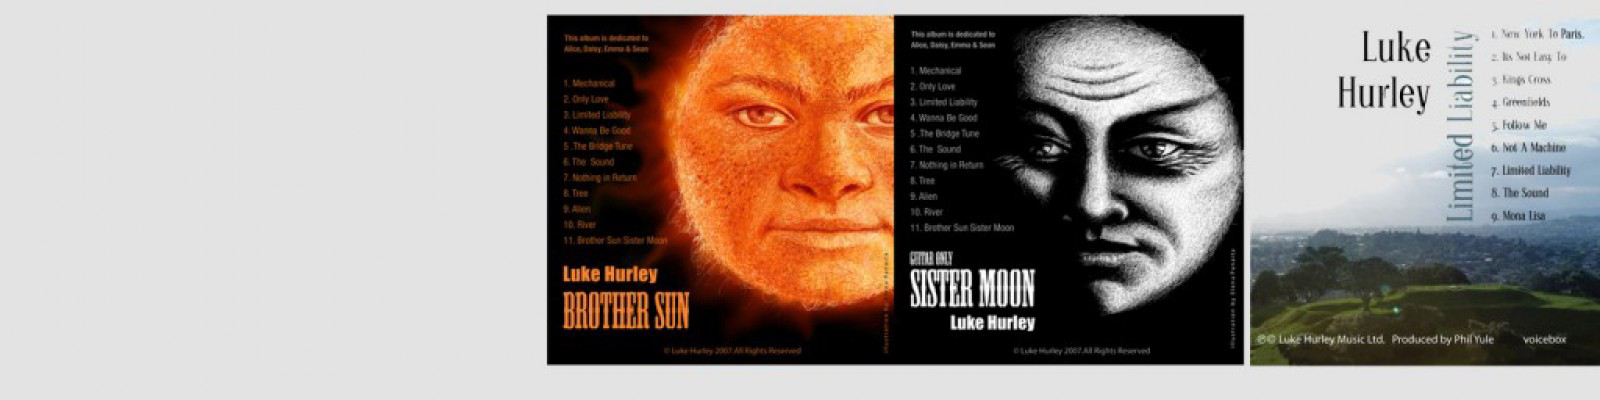 Luke Hurley music - Brother Sun, Sister Moon, Limited Liability - live album